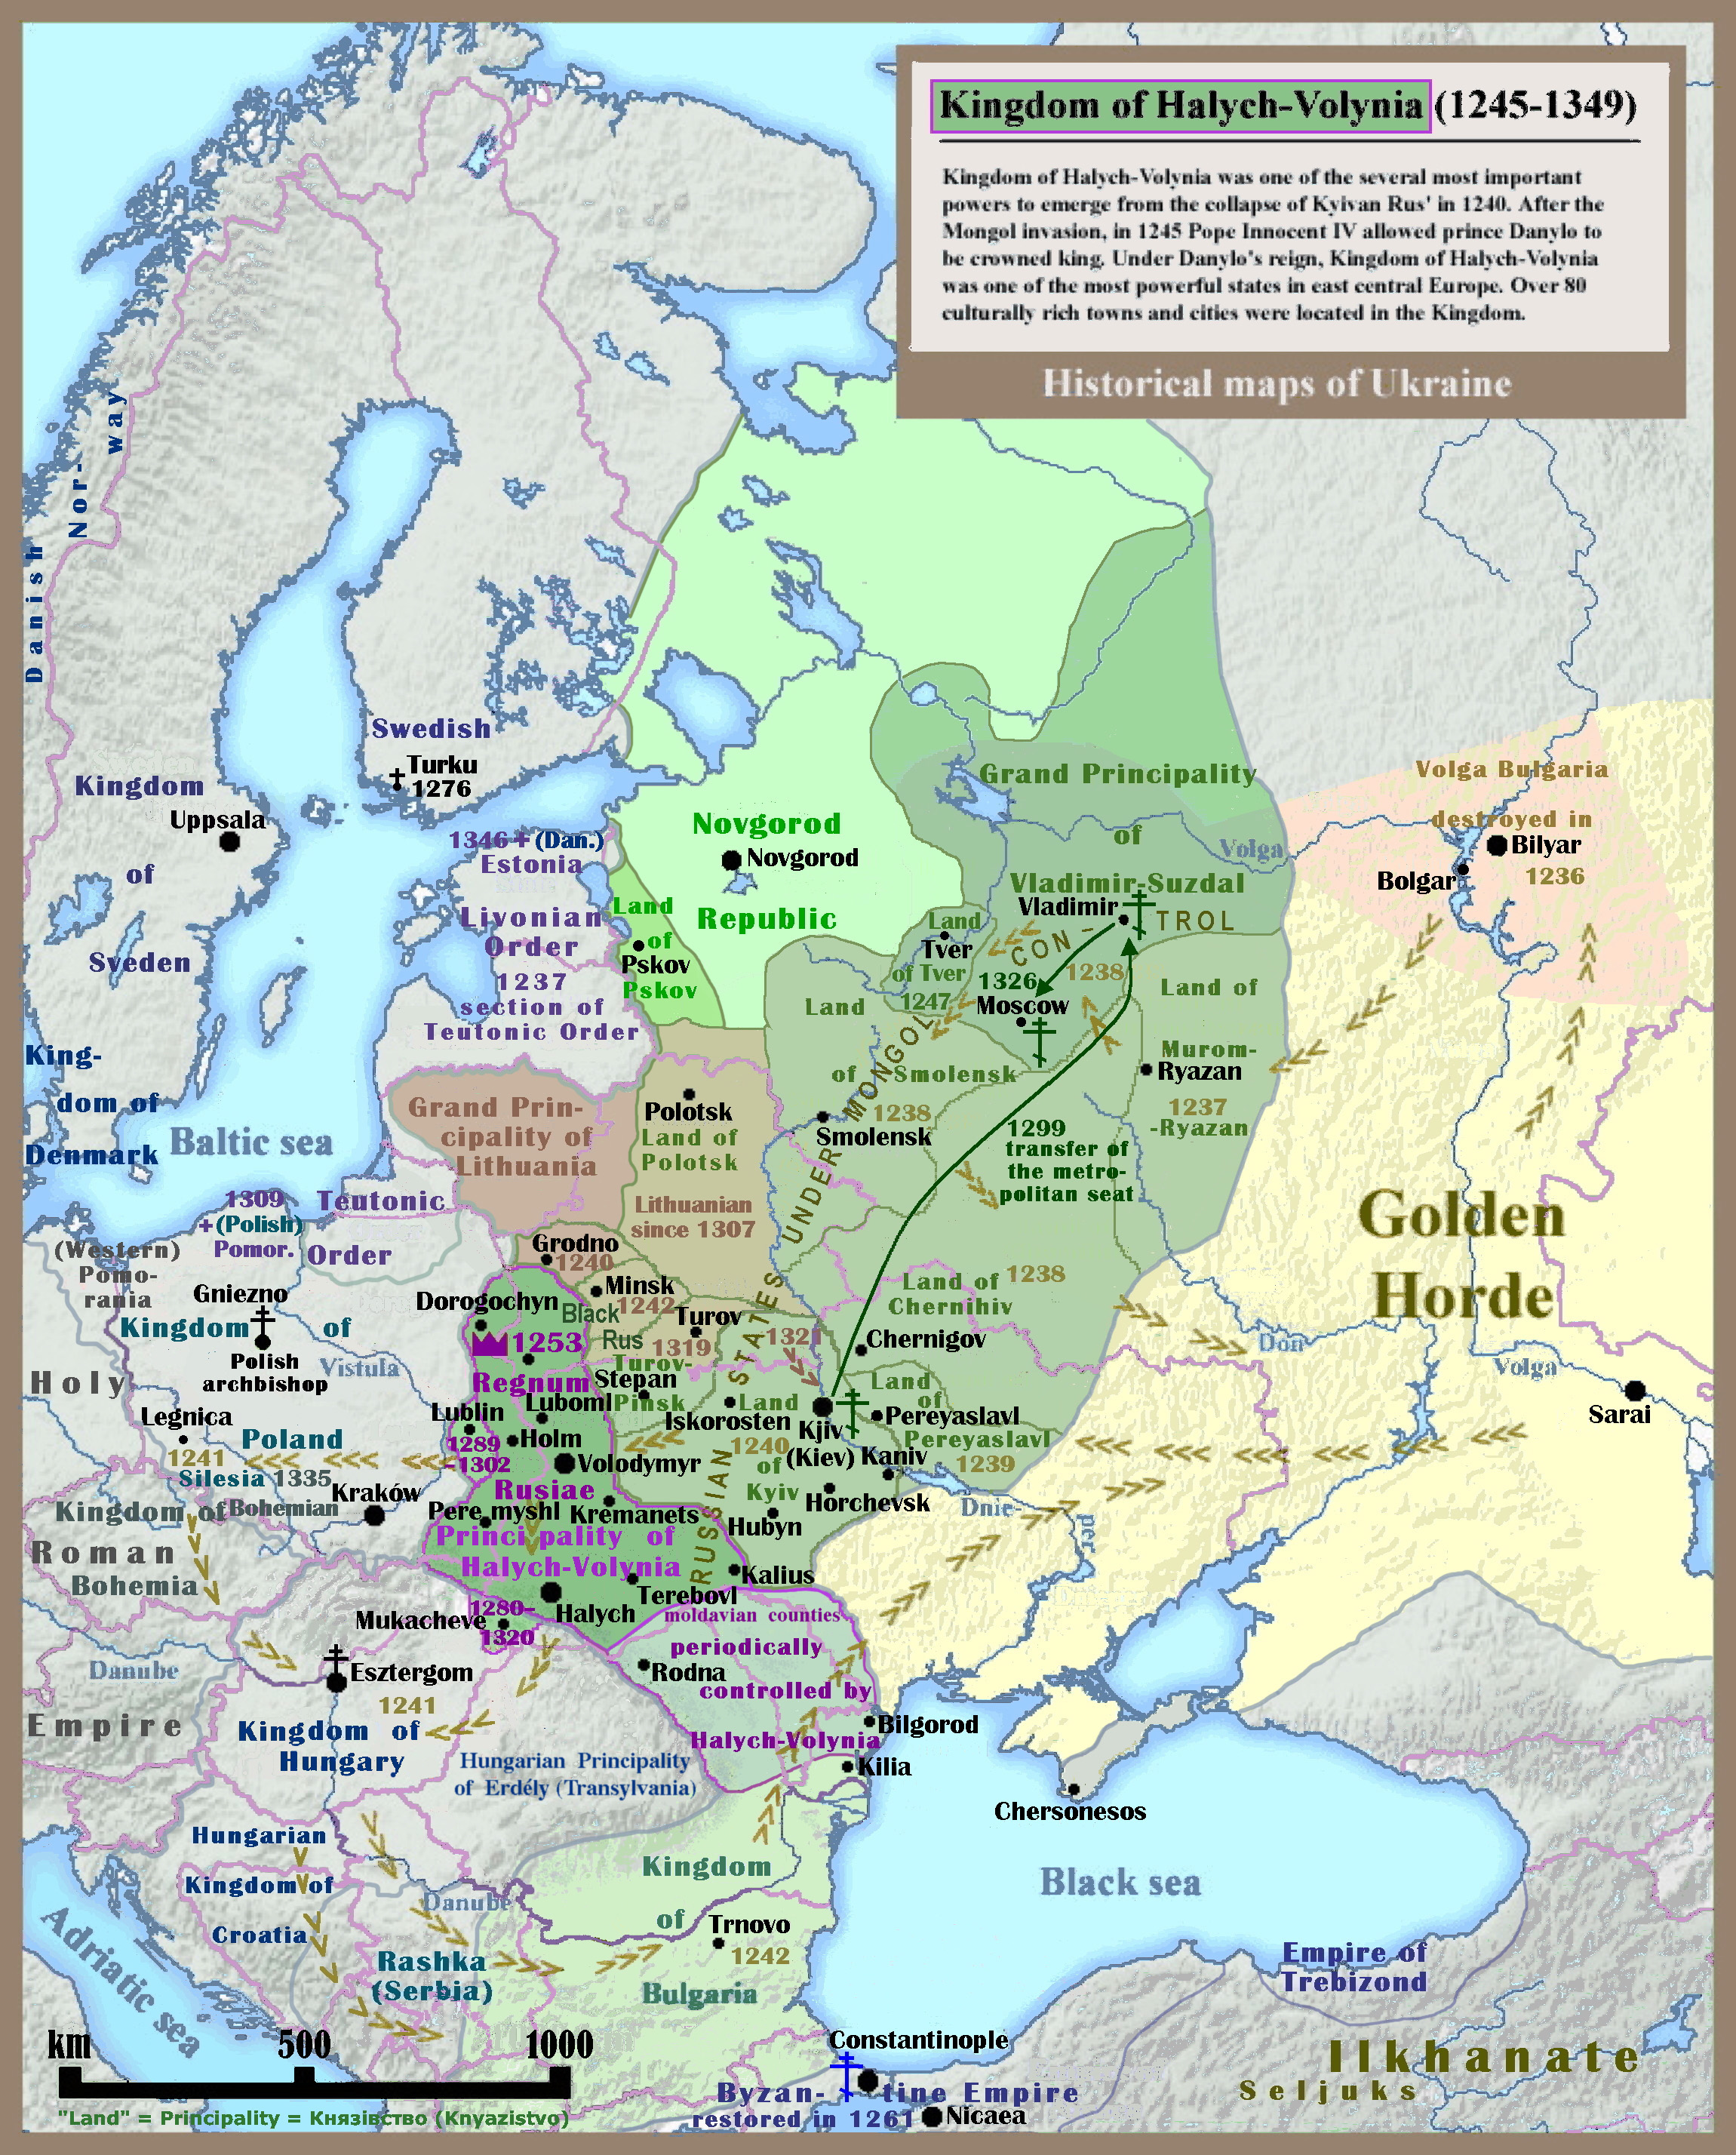 Atlas Of Ukraine Wikimedia Commons - Ukraine map